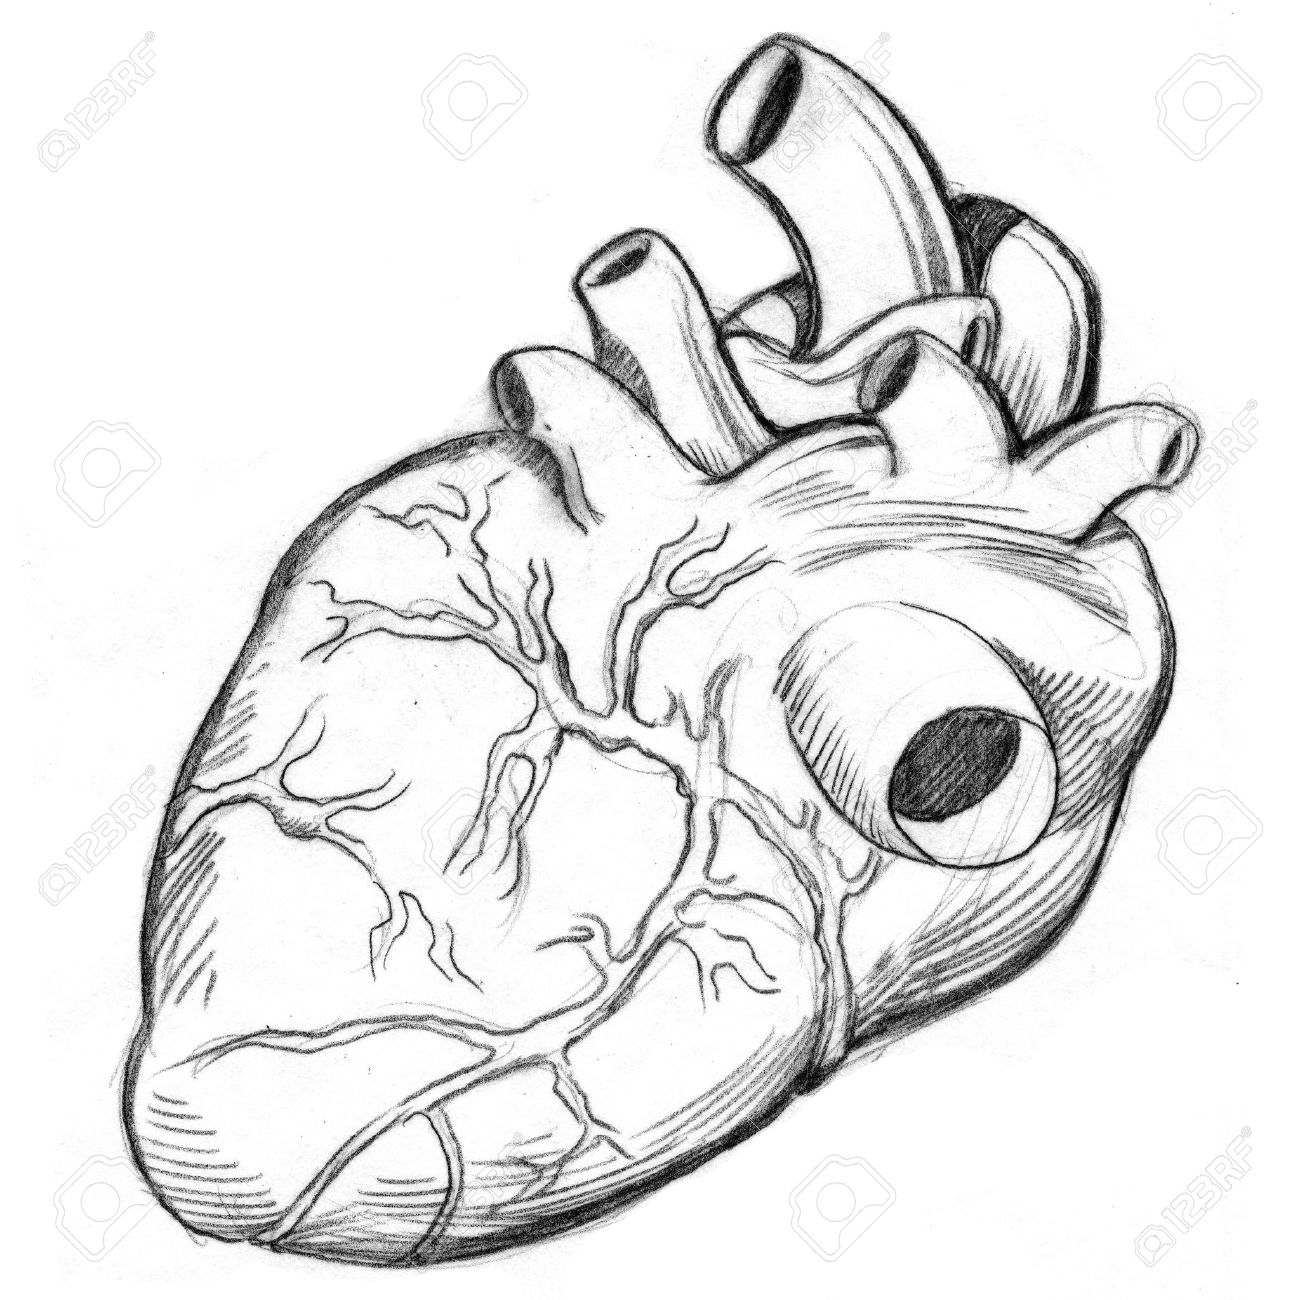 1300x1300 human heart drawing simple an image of a human heart drawing